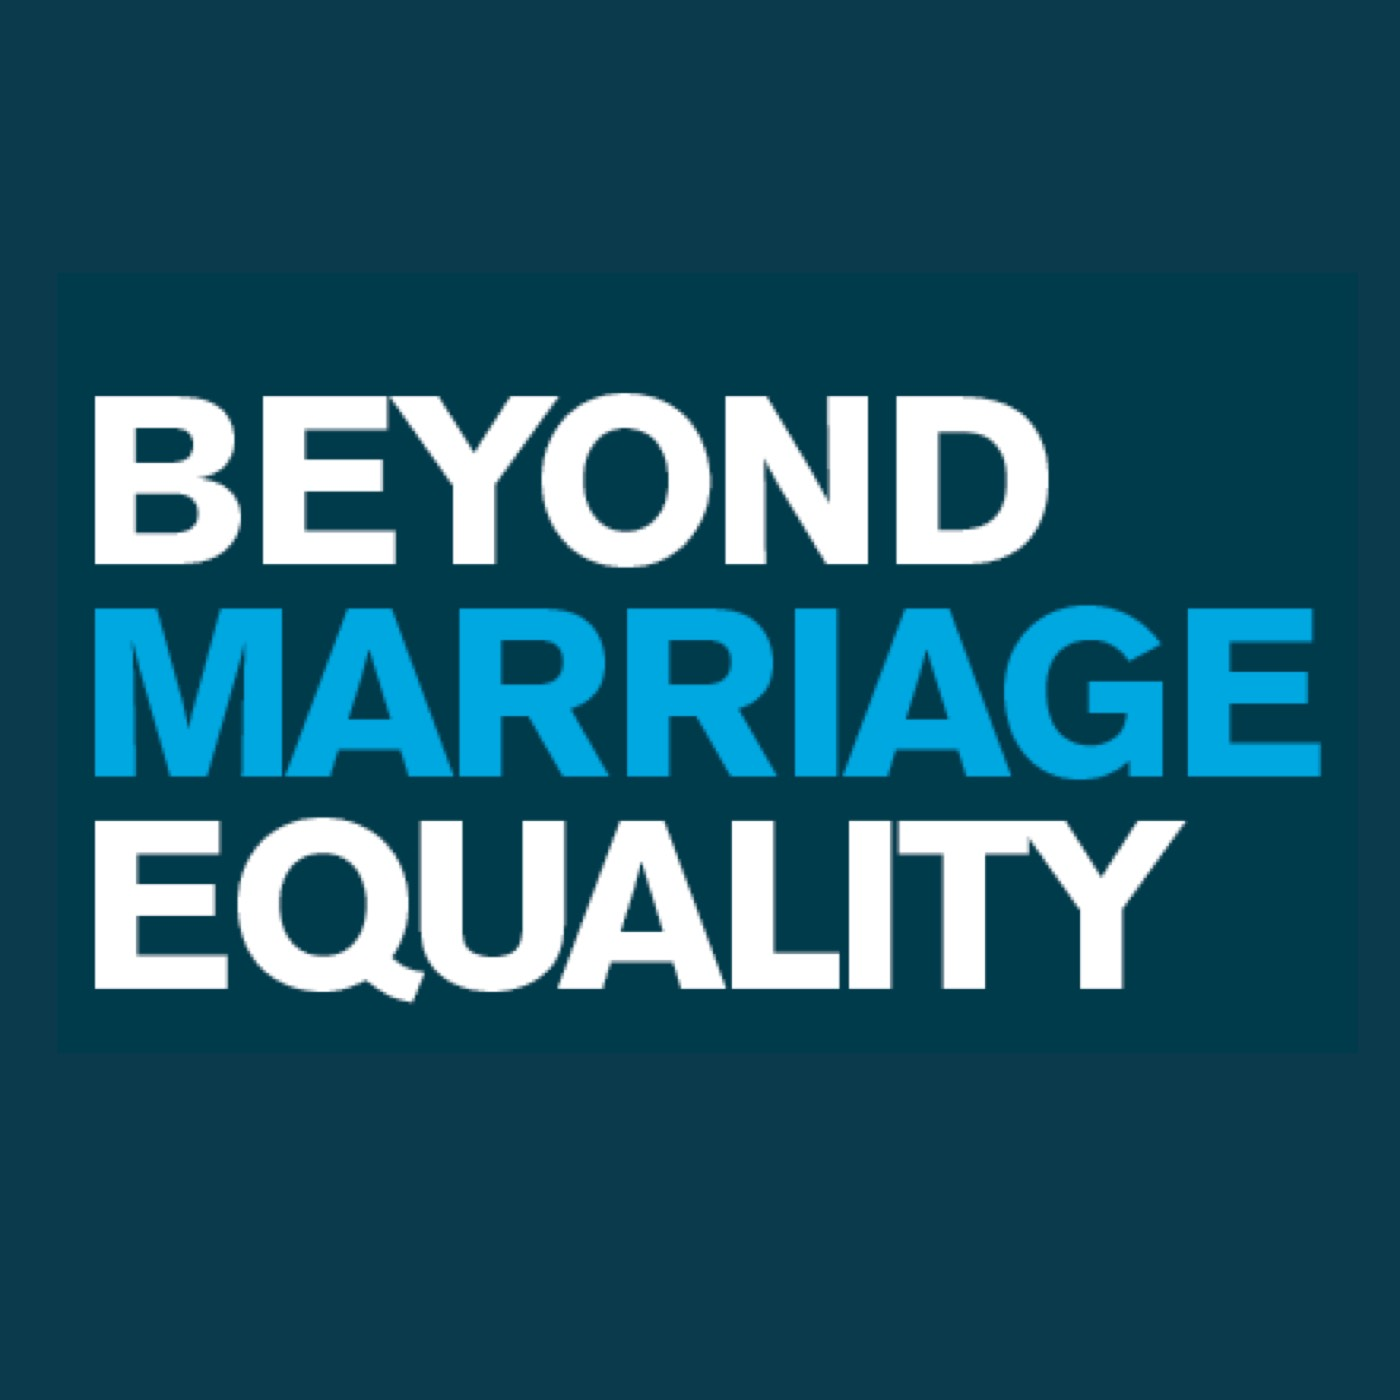 (2015/09/15) Beyond Marriage Equality (LGBTQ Rights)